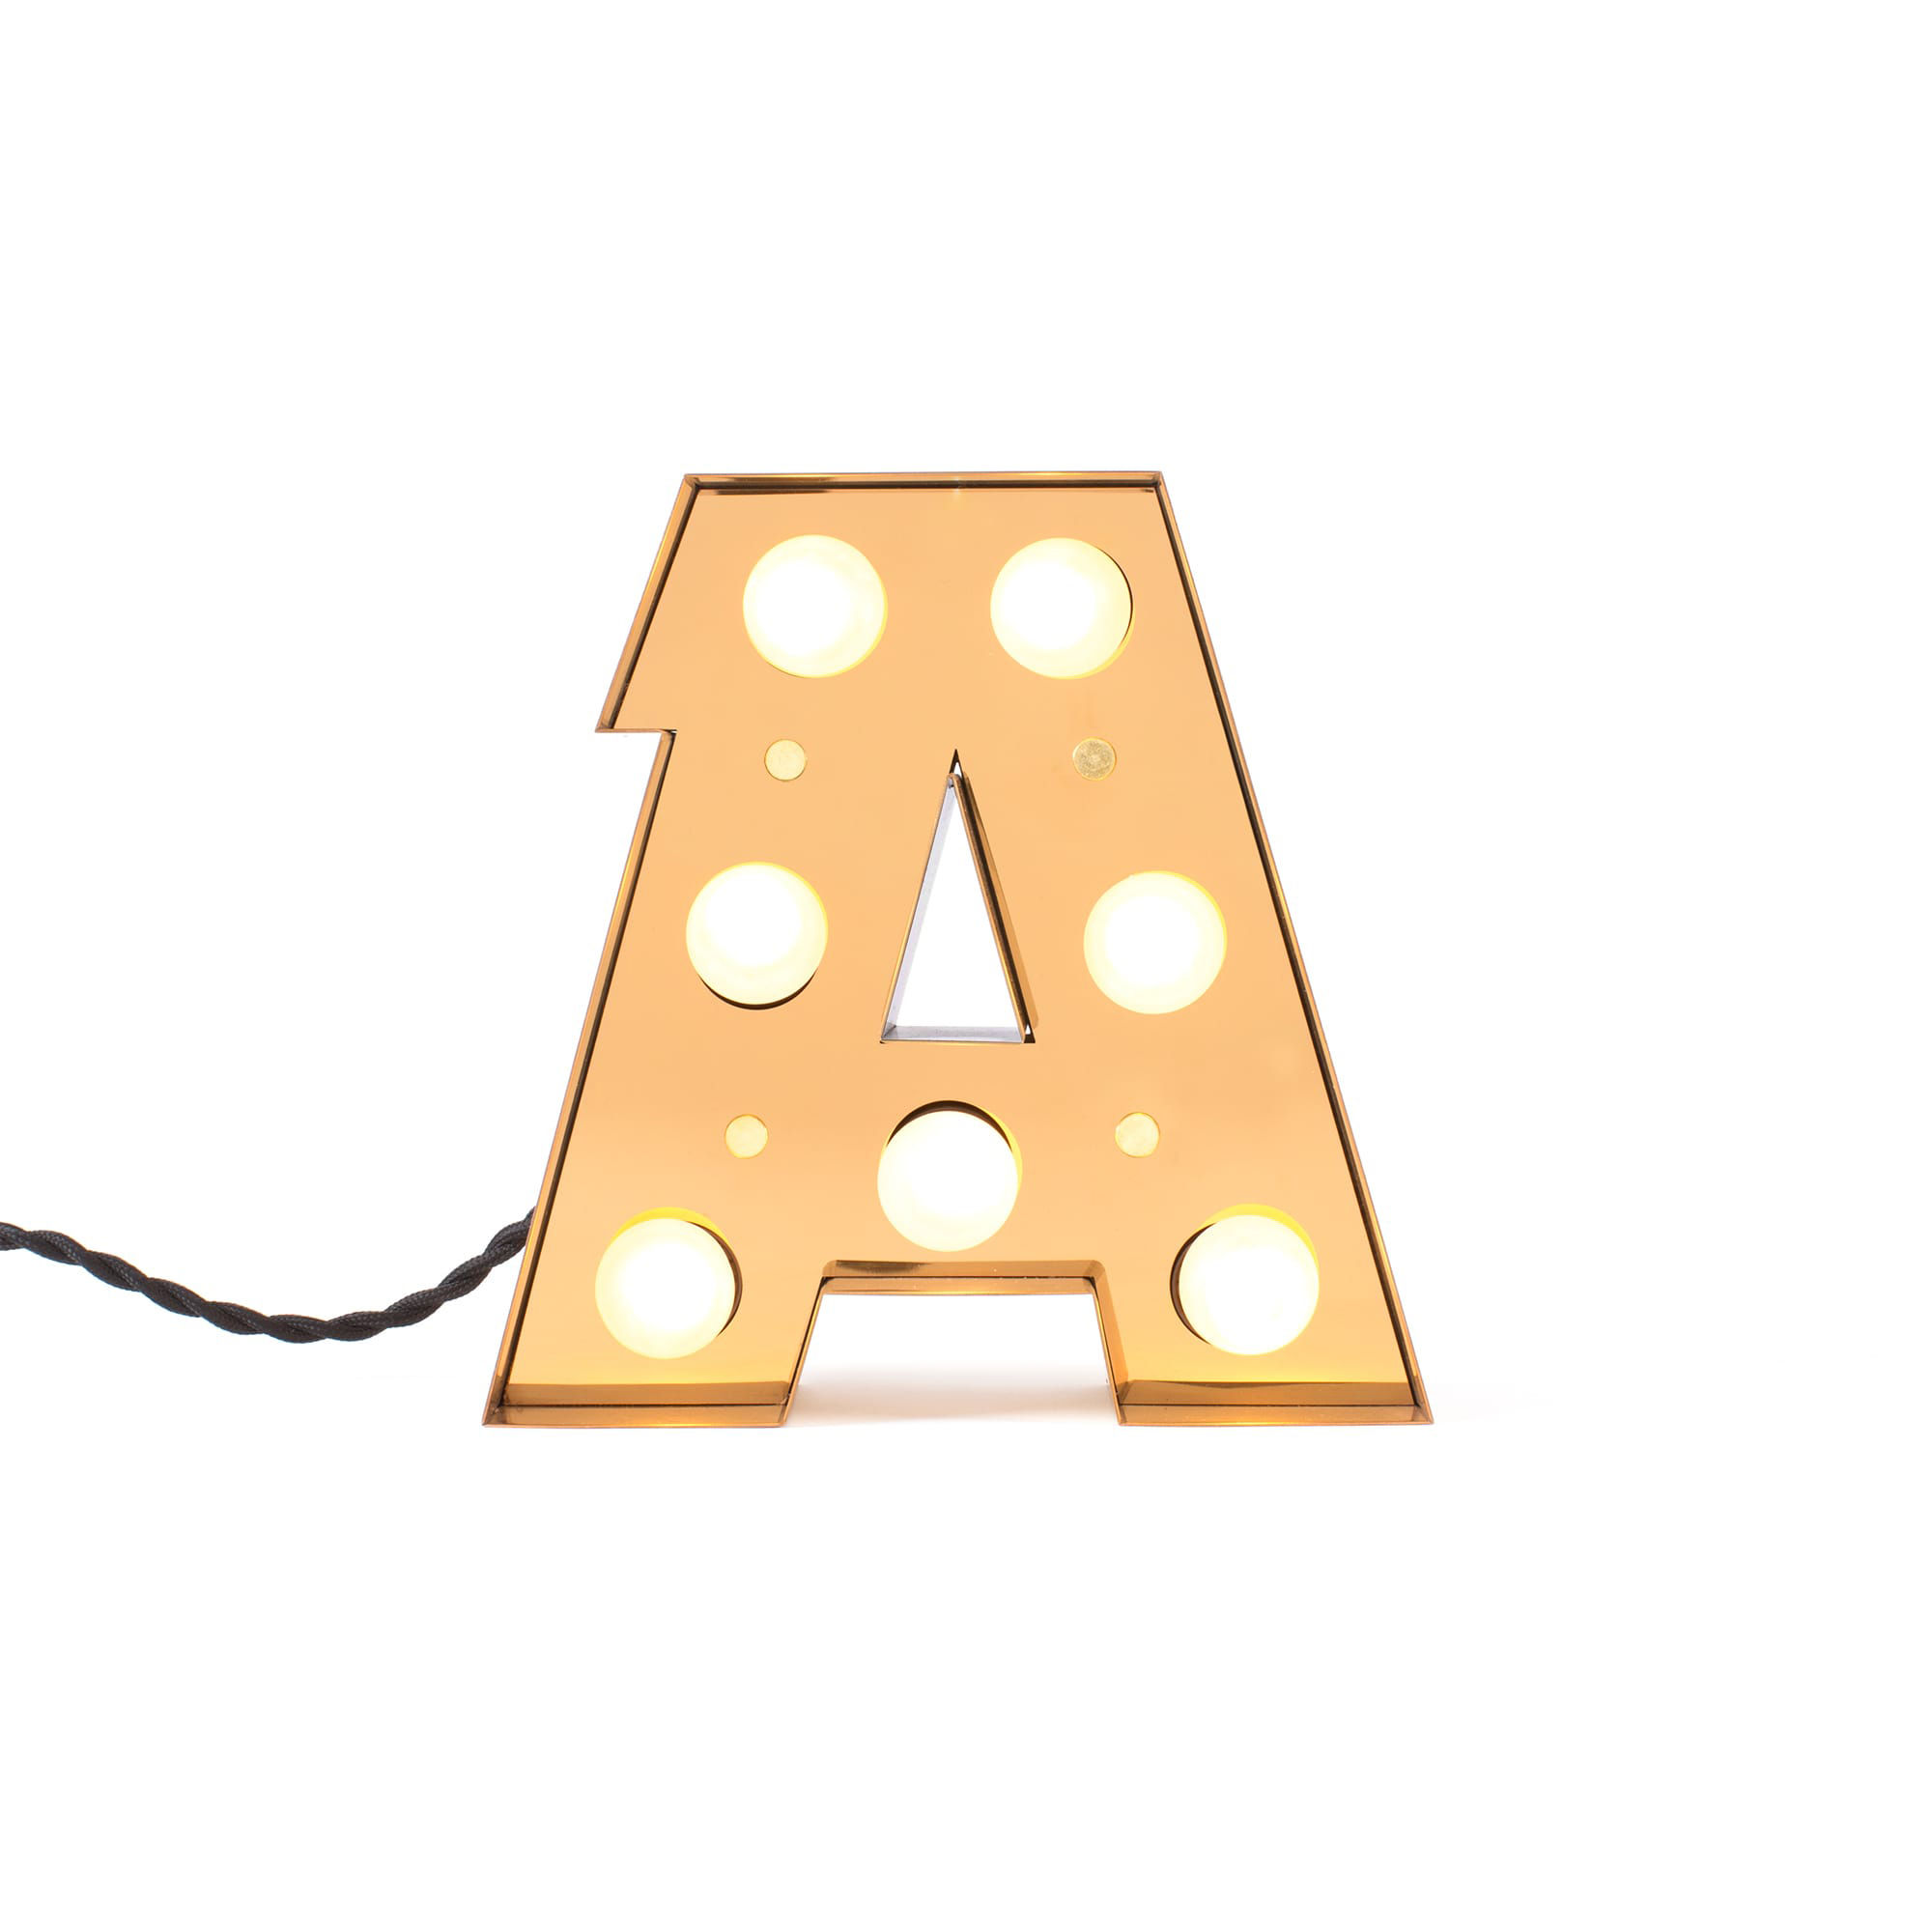 Decoration - Children's Home Accessories - Caractère Table lamp - / Wall light - Letter A - H 20 cm by Seletti - A - Lacquered metal